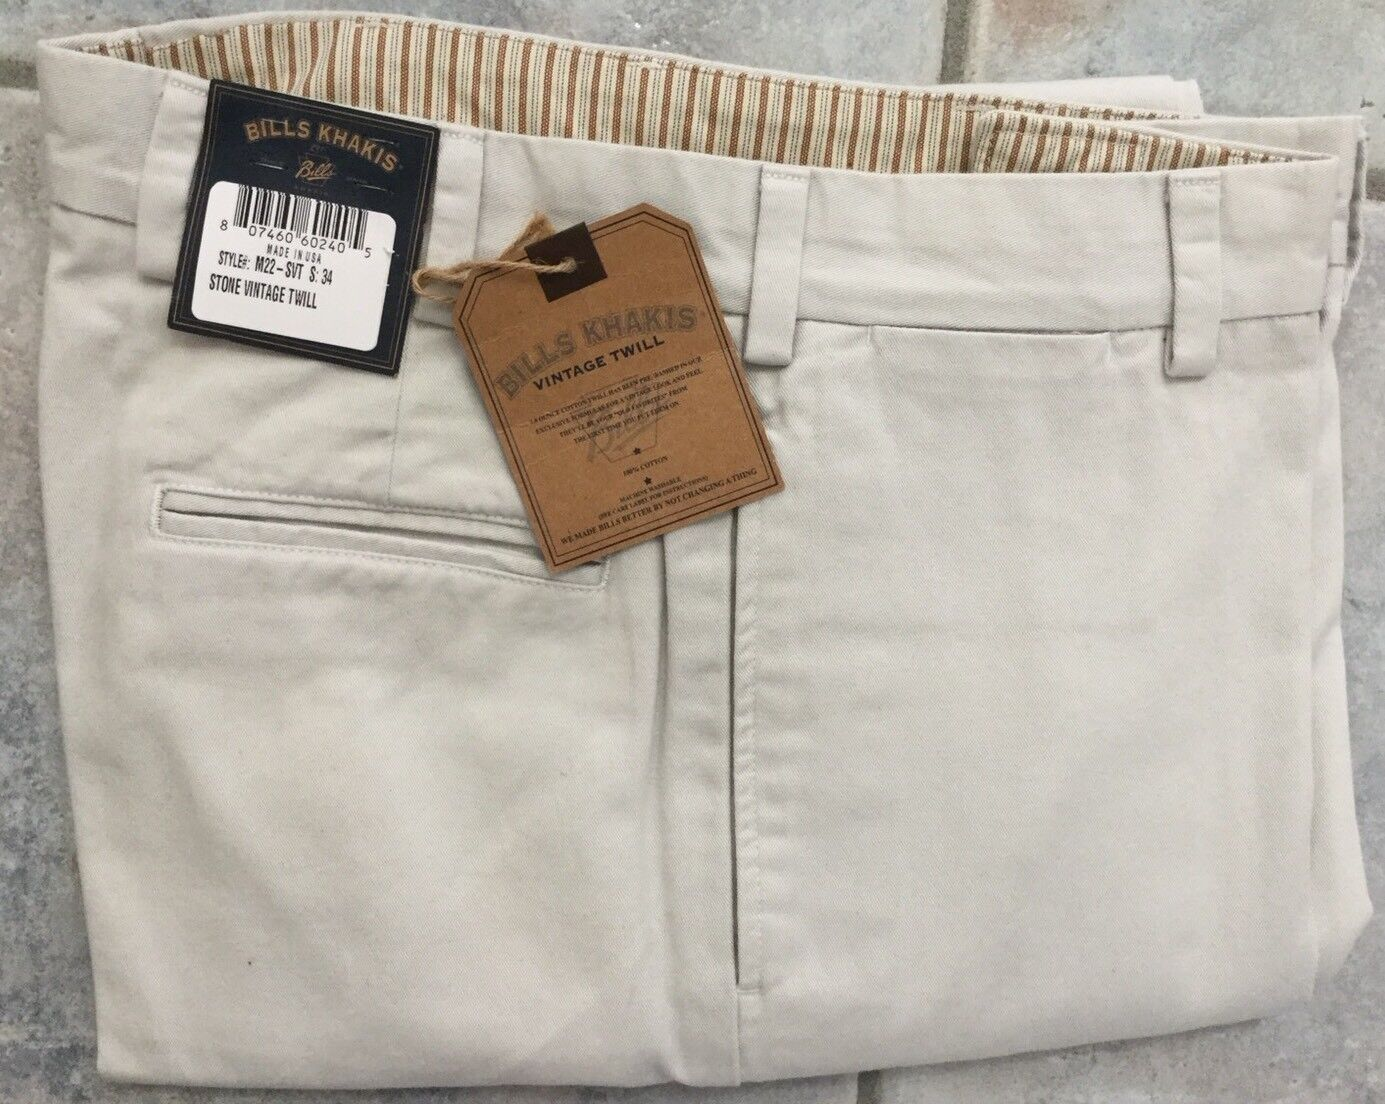 BRAND NEW -Bills khakis M34-SVT Size 34X34 TRIM FIT VINTAGE TWILL Stone